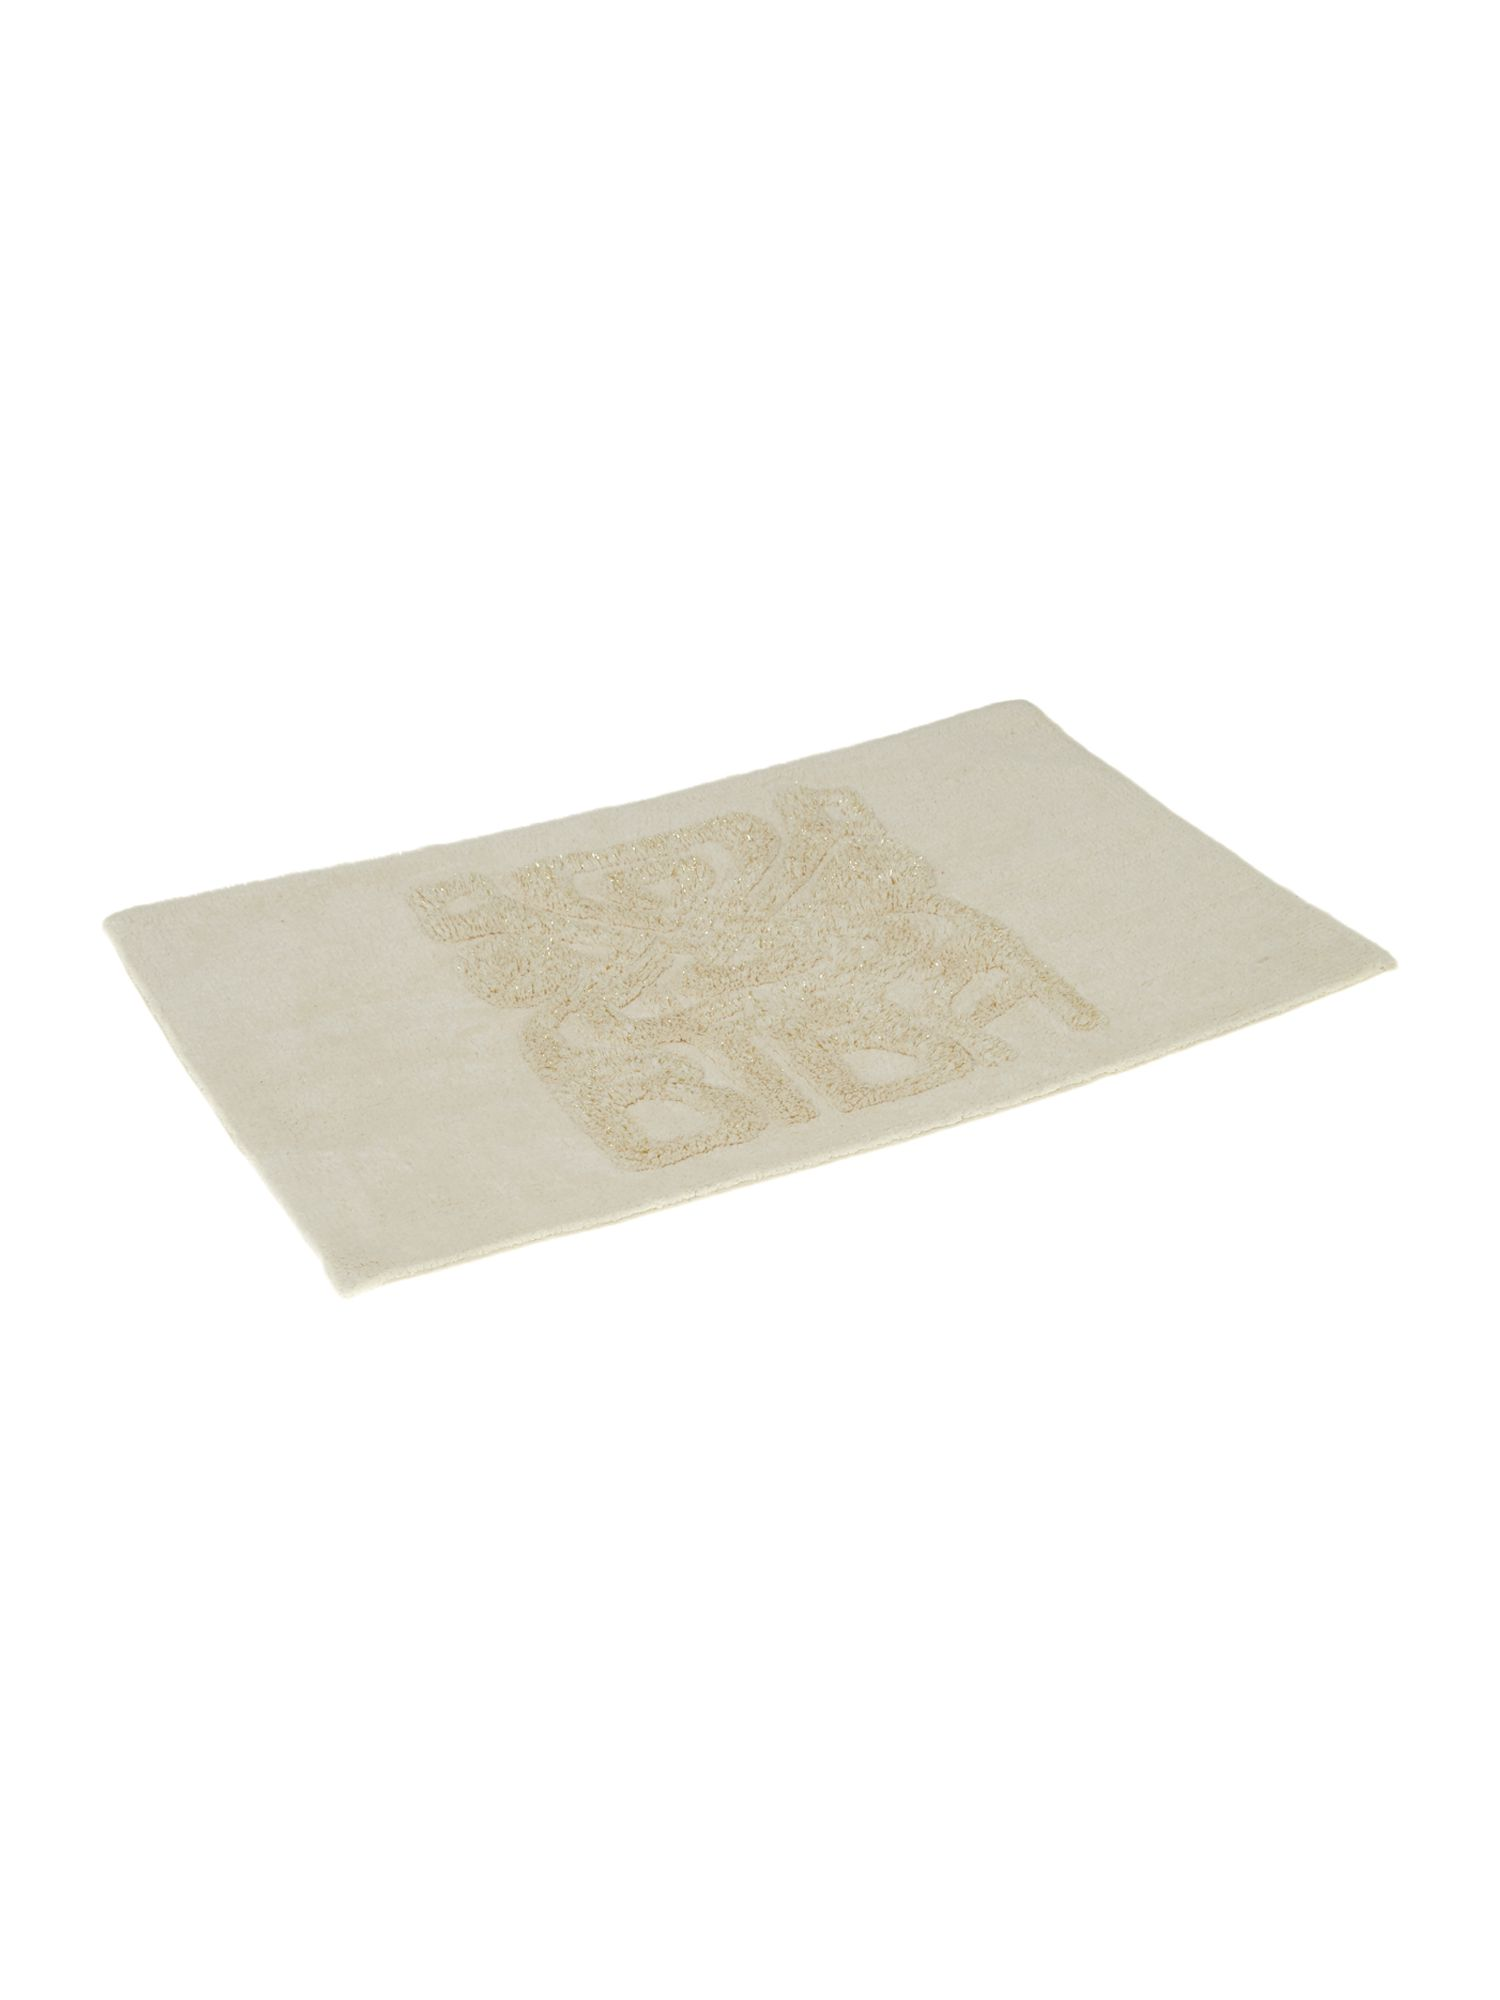 Logo cream bathmat